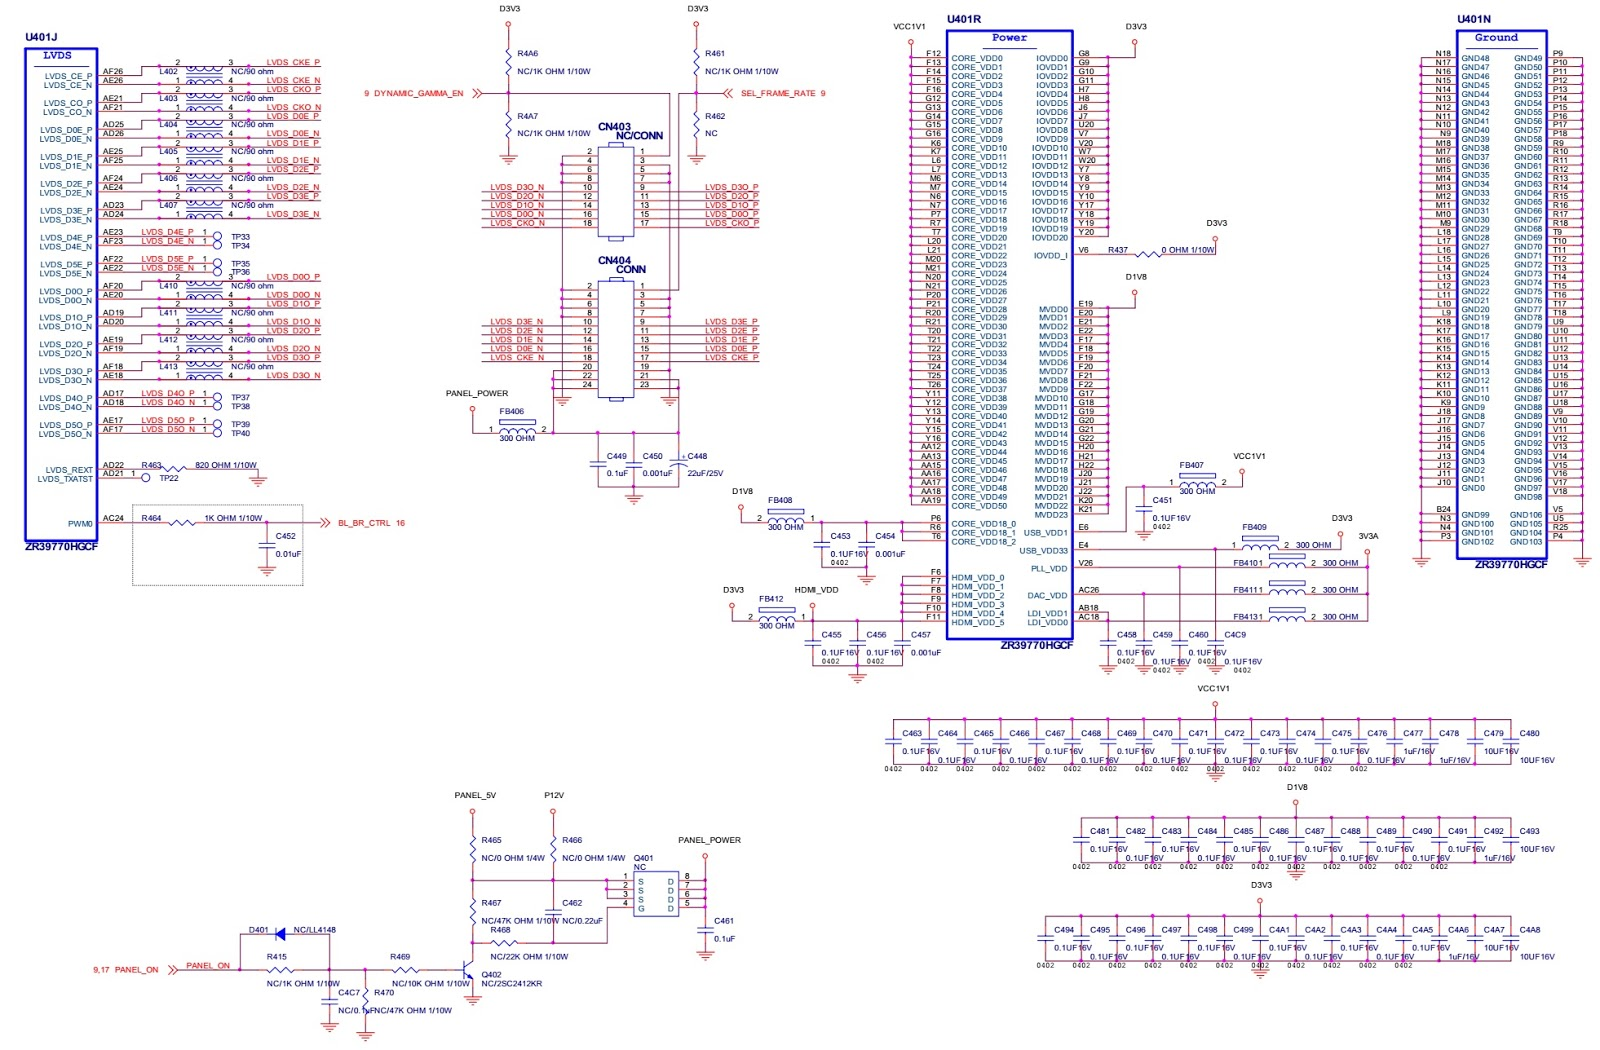 medium resolution of manguonblog insignia ns lcd32 09 32 u2033lcd tv power smps and lvds lcd tv schematic diagram 32 inch insignia tv schematic circuit diagram